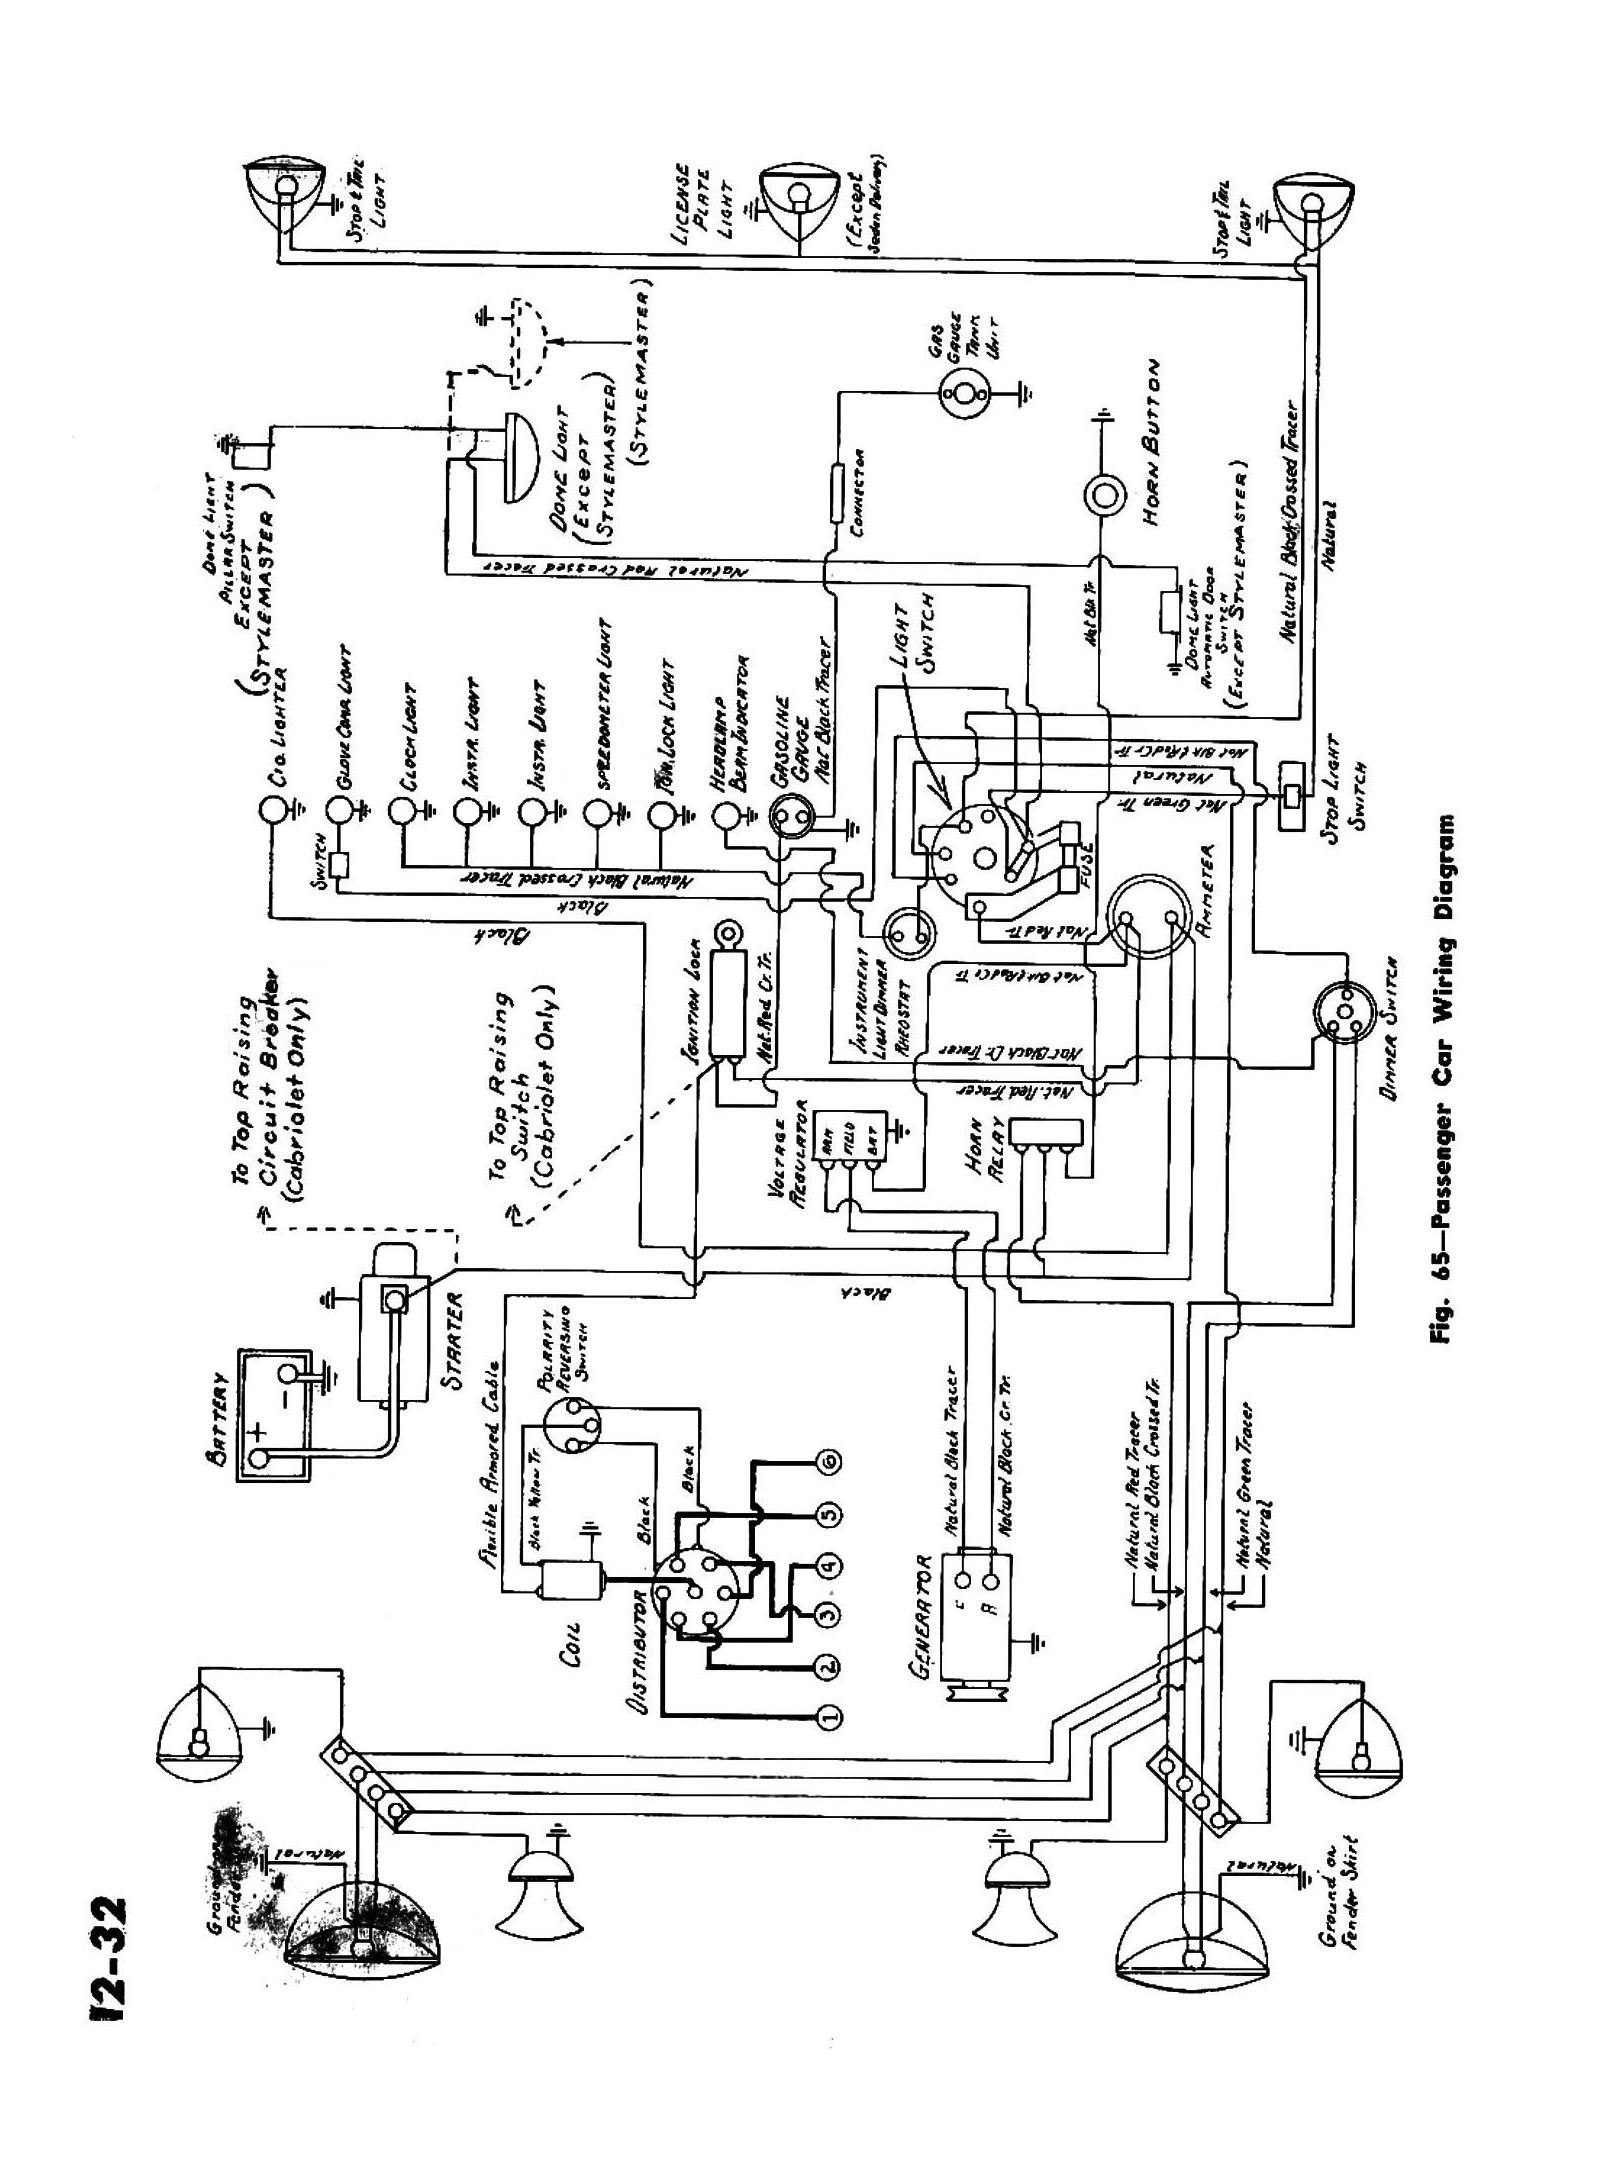 Chevy Wiring Diagrams Electrical Lighting 1945 Passenger Car